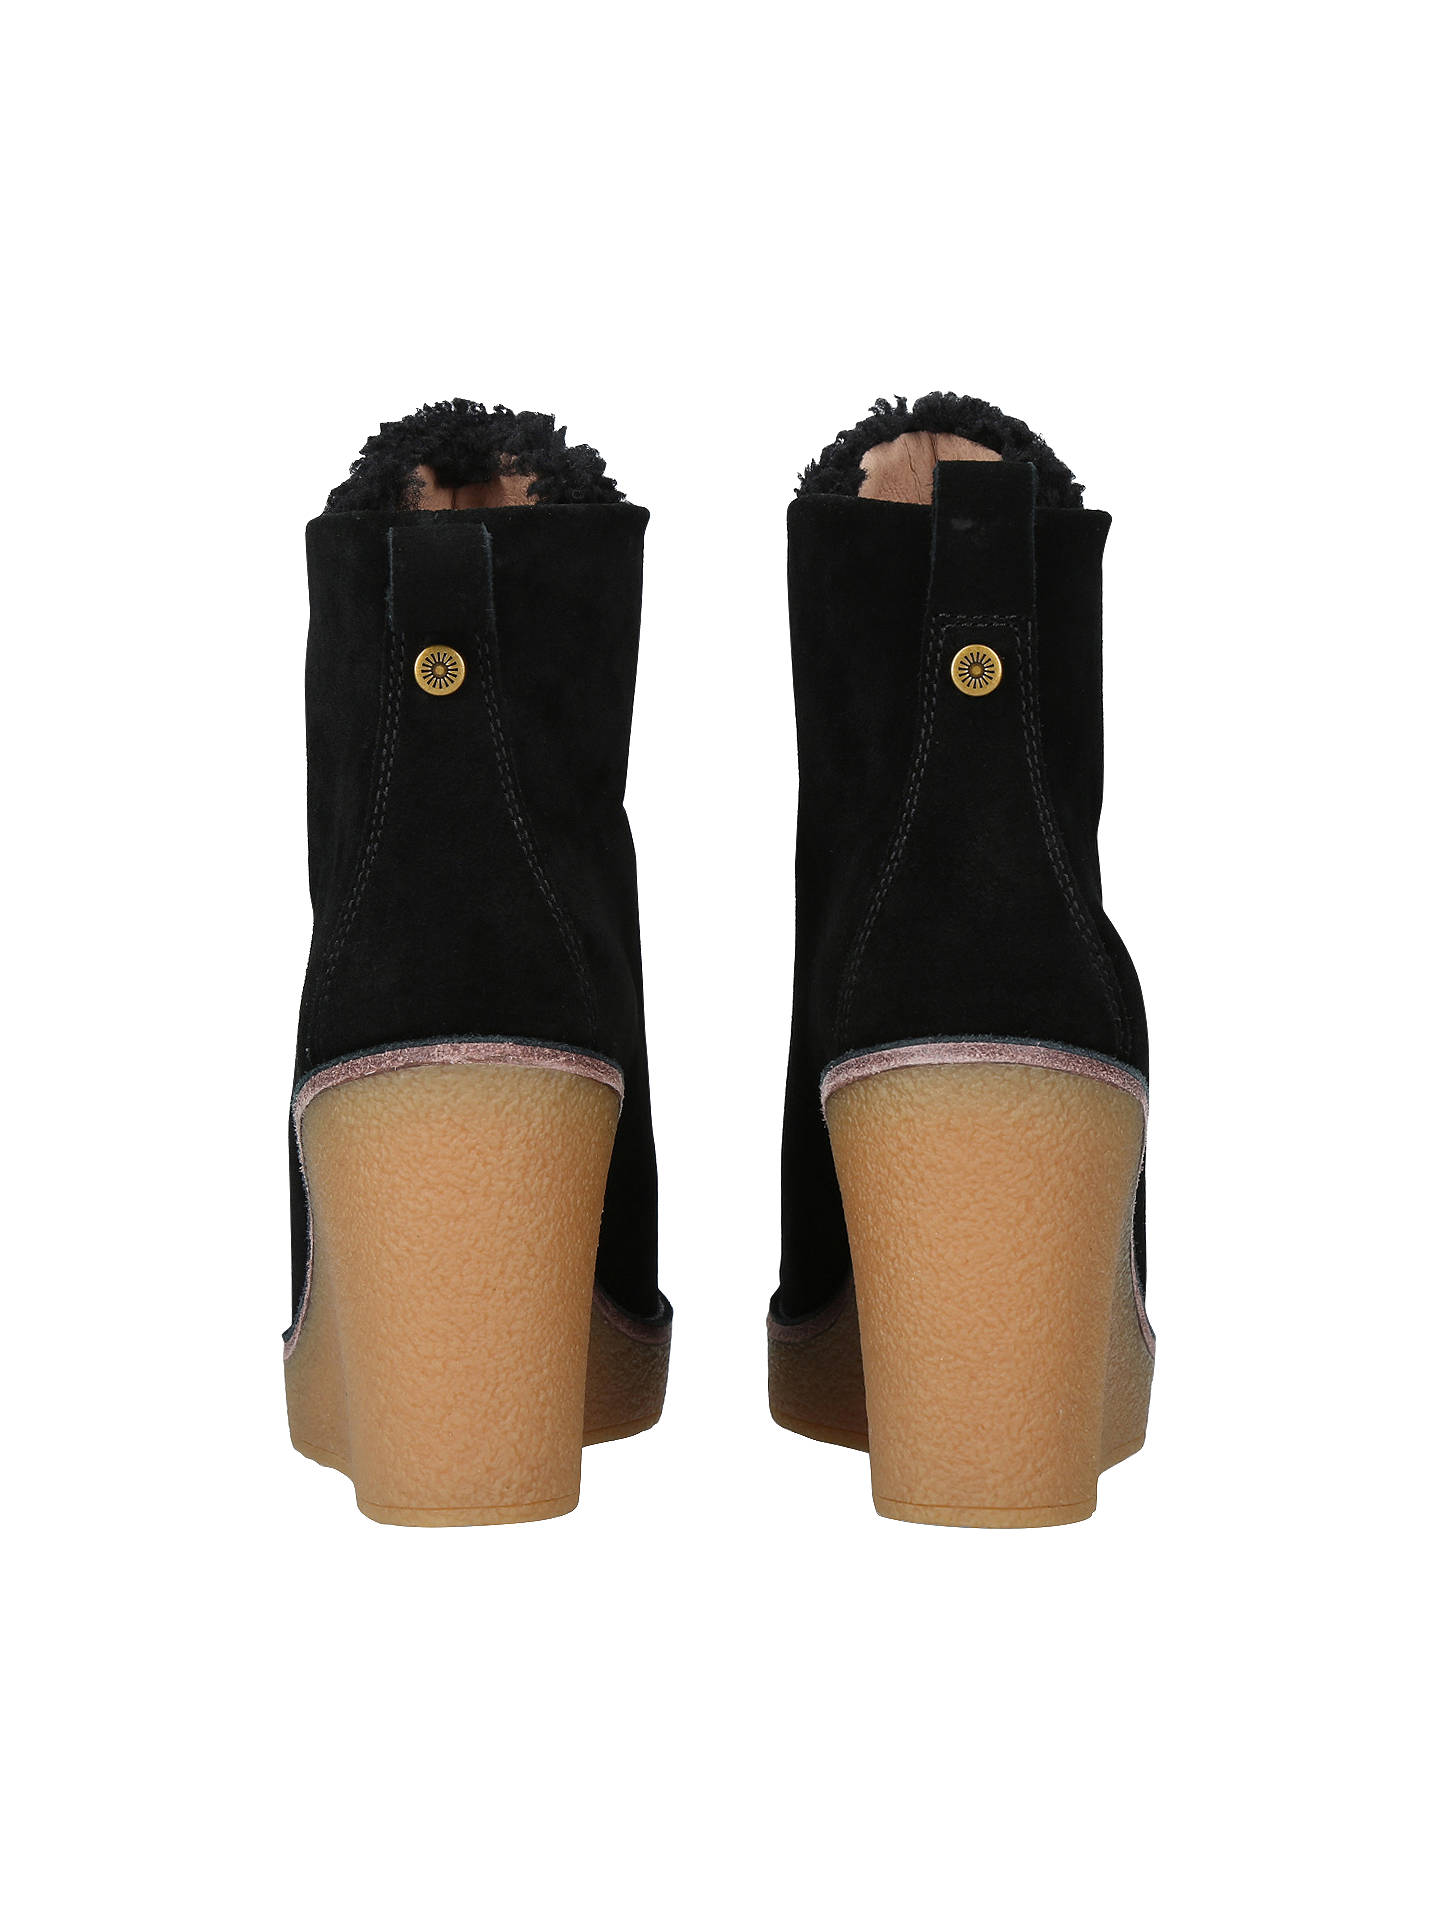 f536389c7a6 UGG Kiernan Wedge Heel Ankle Boots, Black Suede at John Lewis & Partners